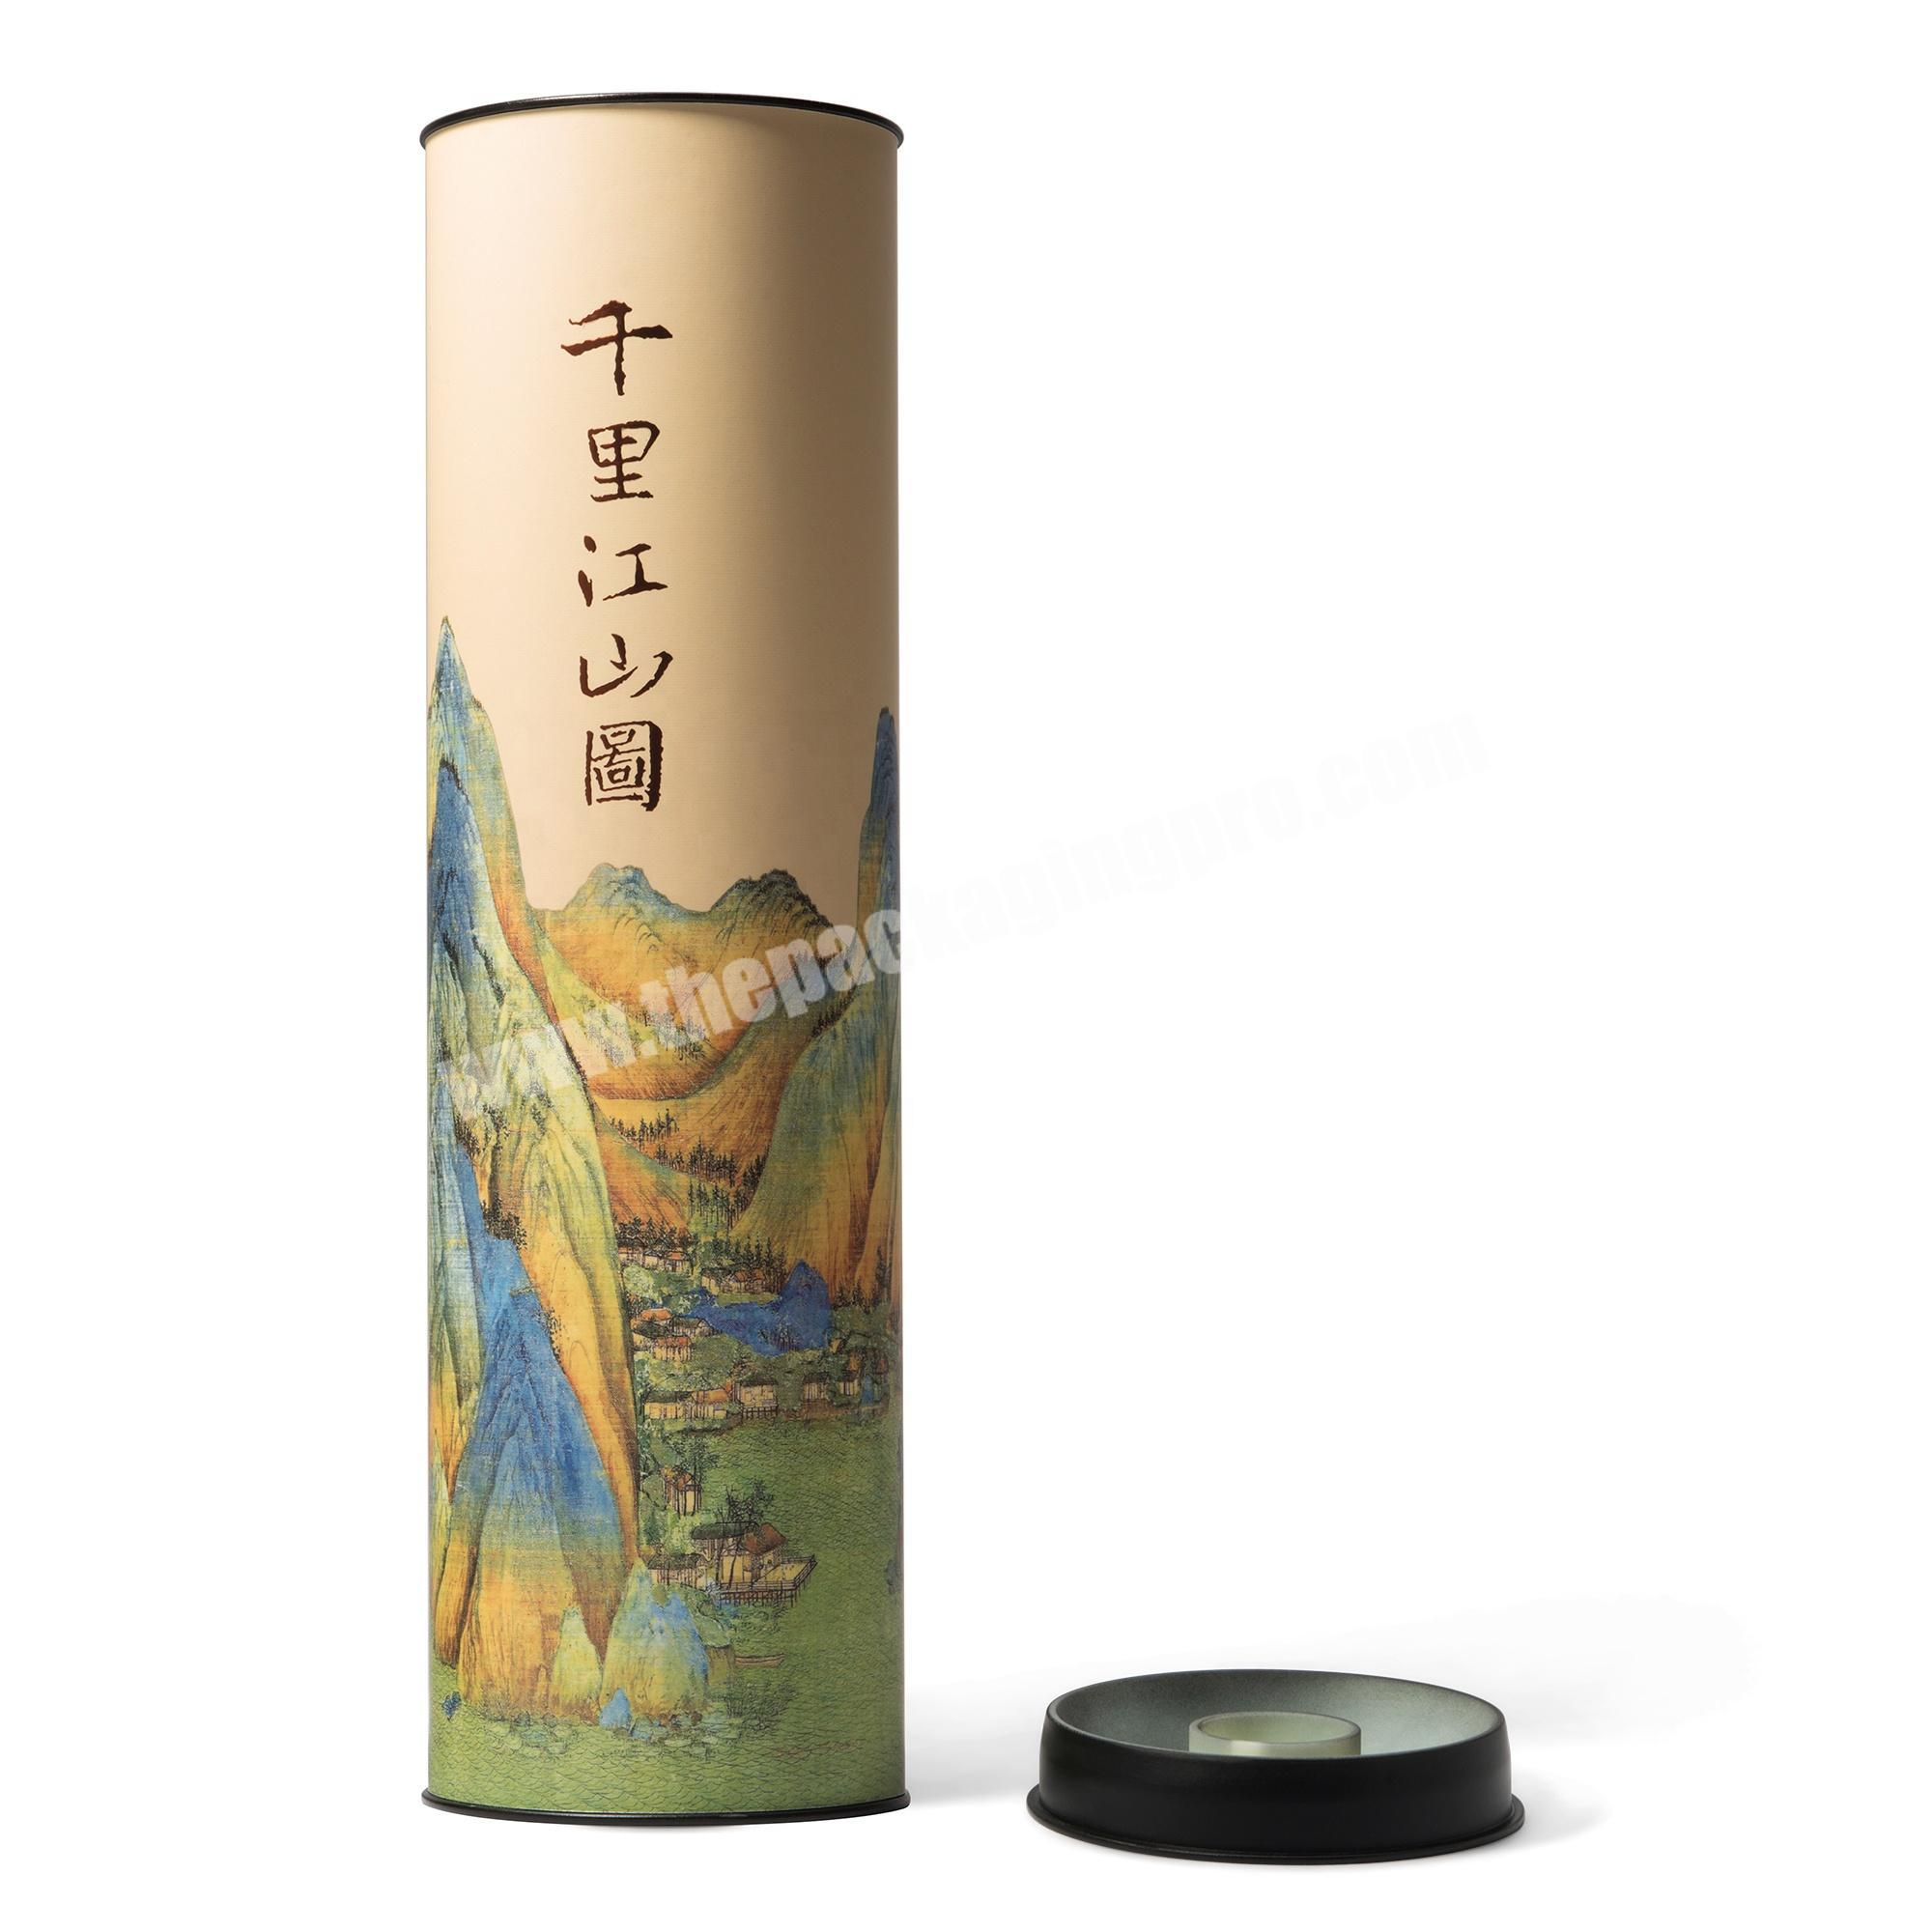 Wholesale Customized Oval Round Cylinder Tube Paper Box with Tin Cap for Wine Tea Sticks Gifts